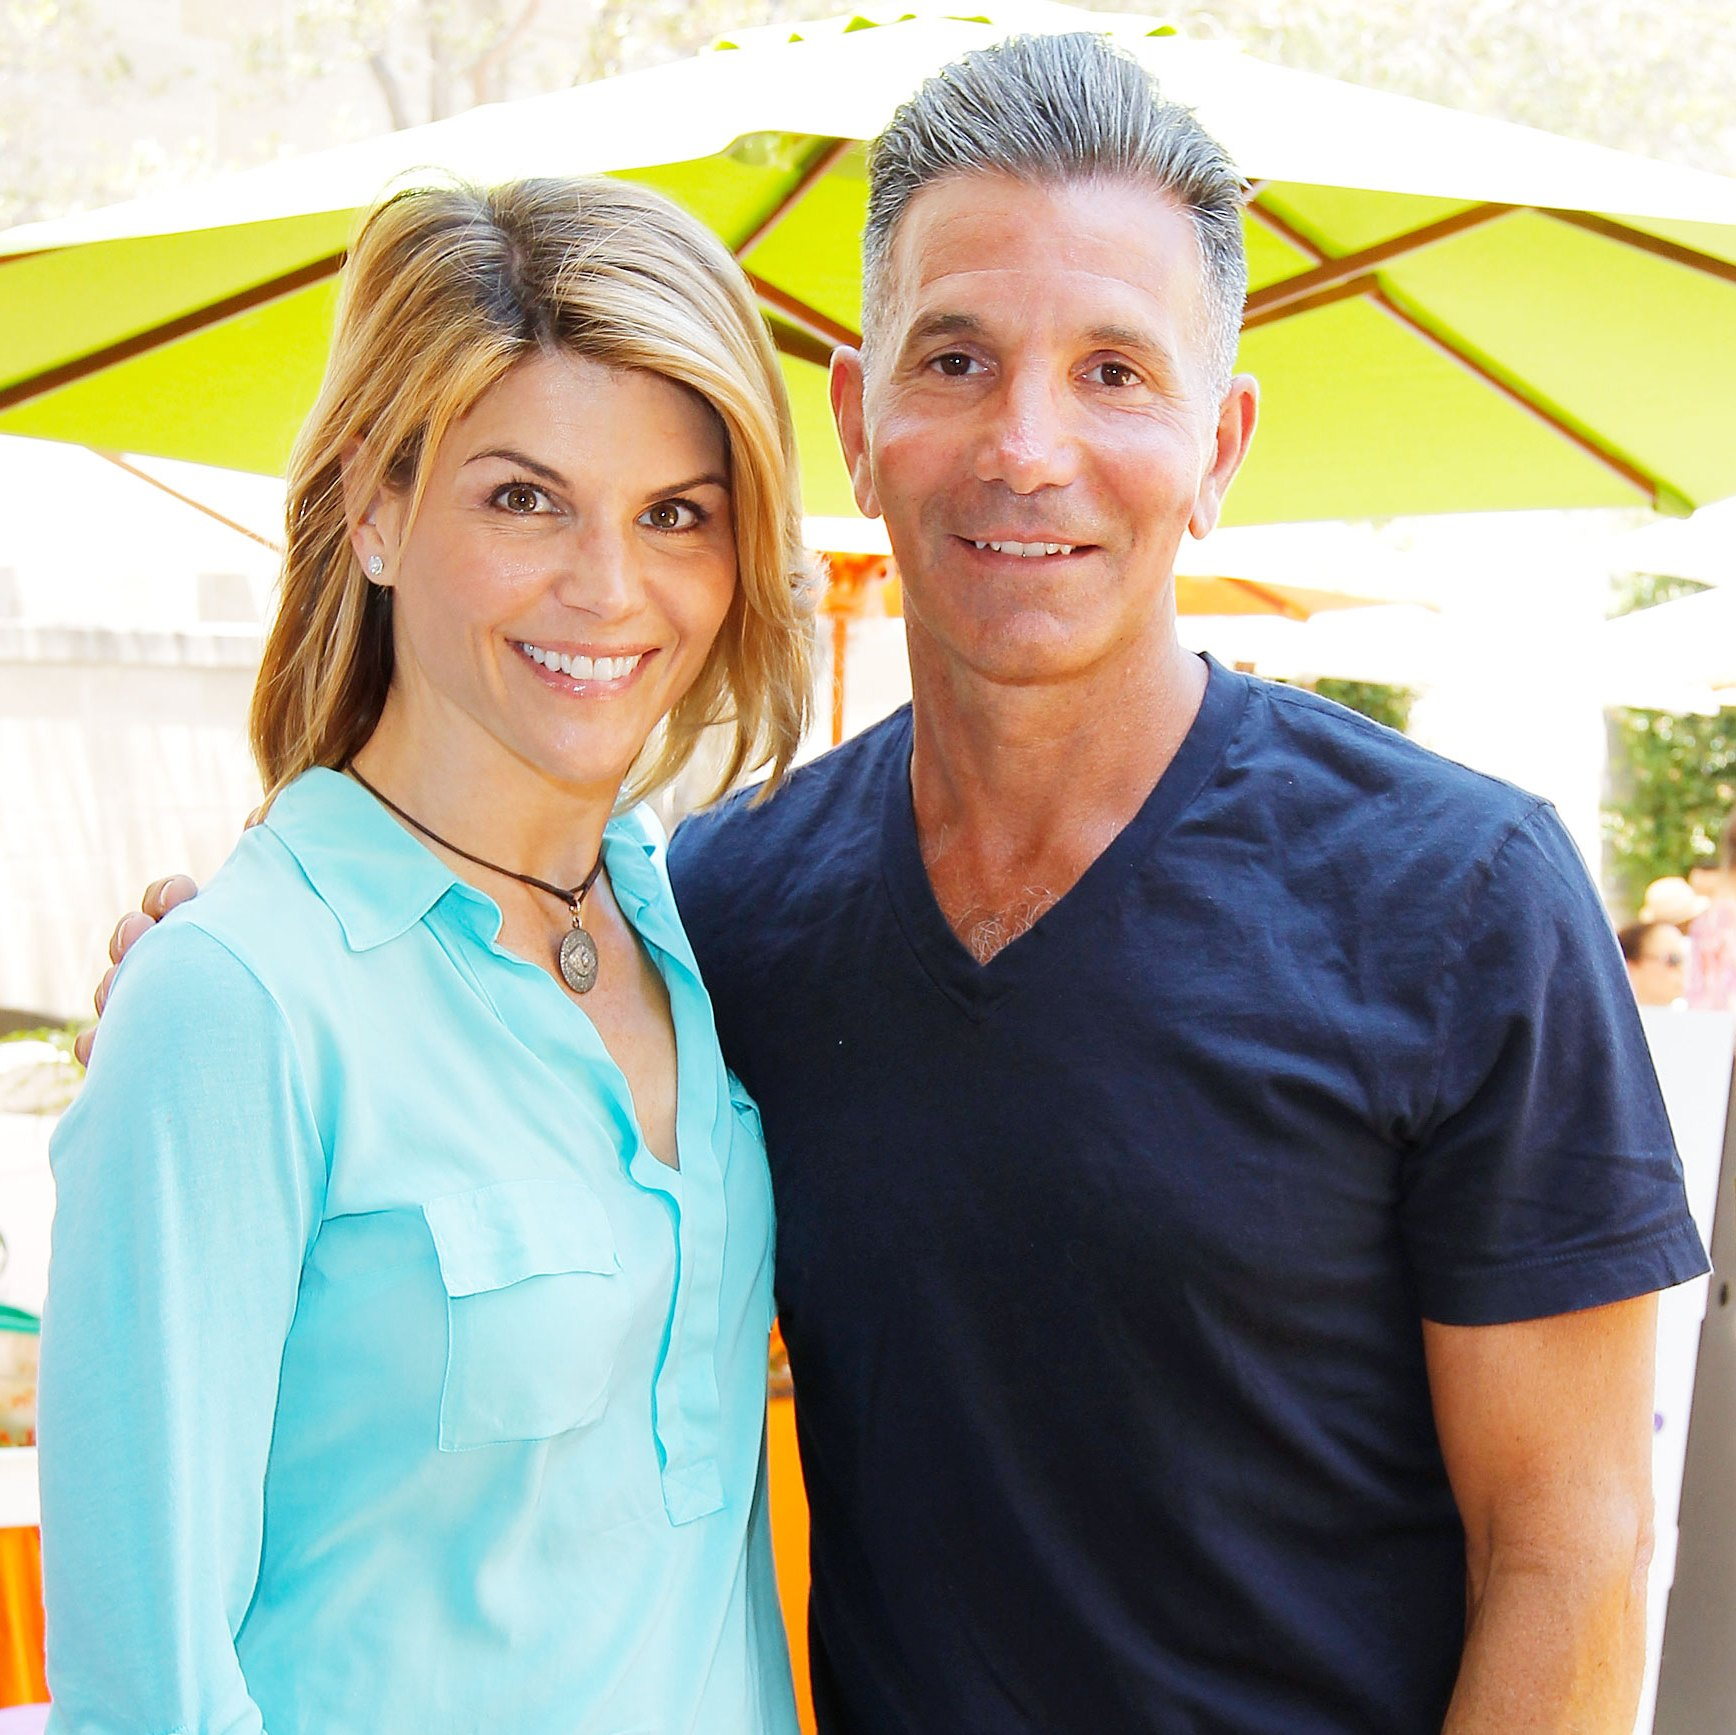 Lori Loughlin Friends Mossimo Giannulli College Scandal